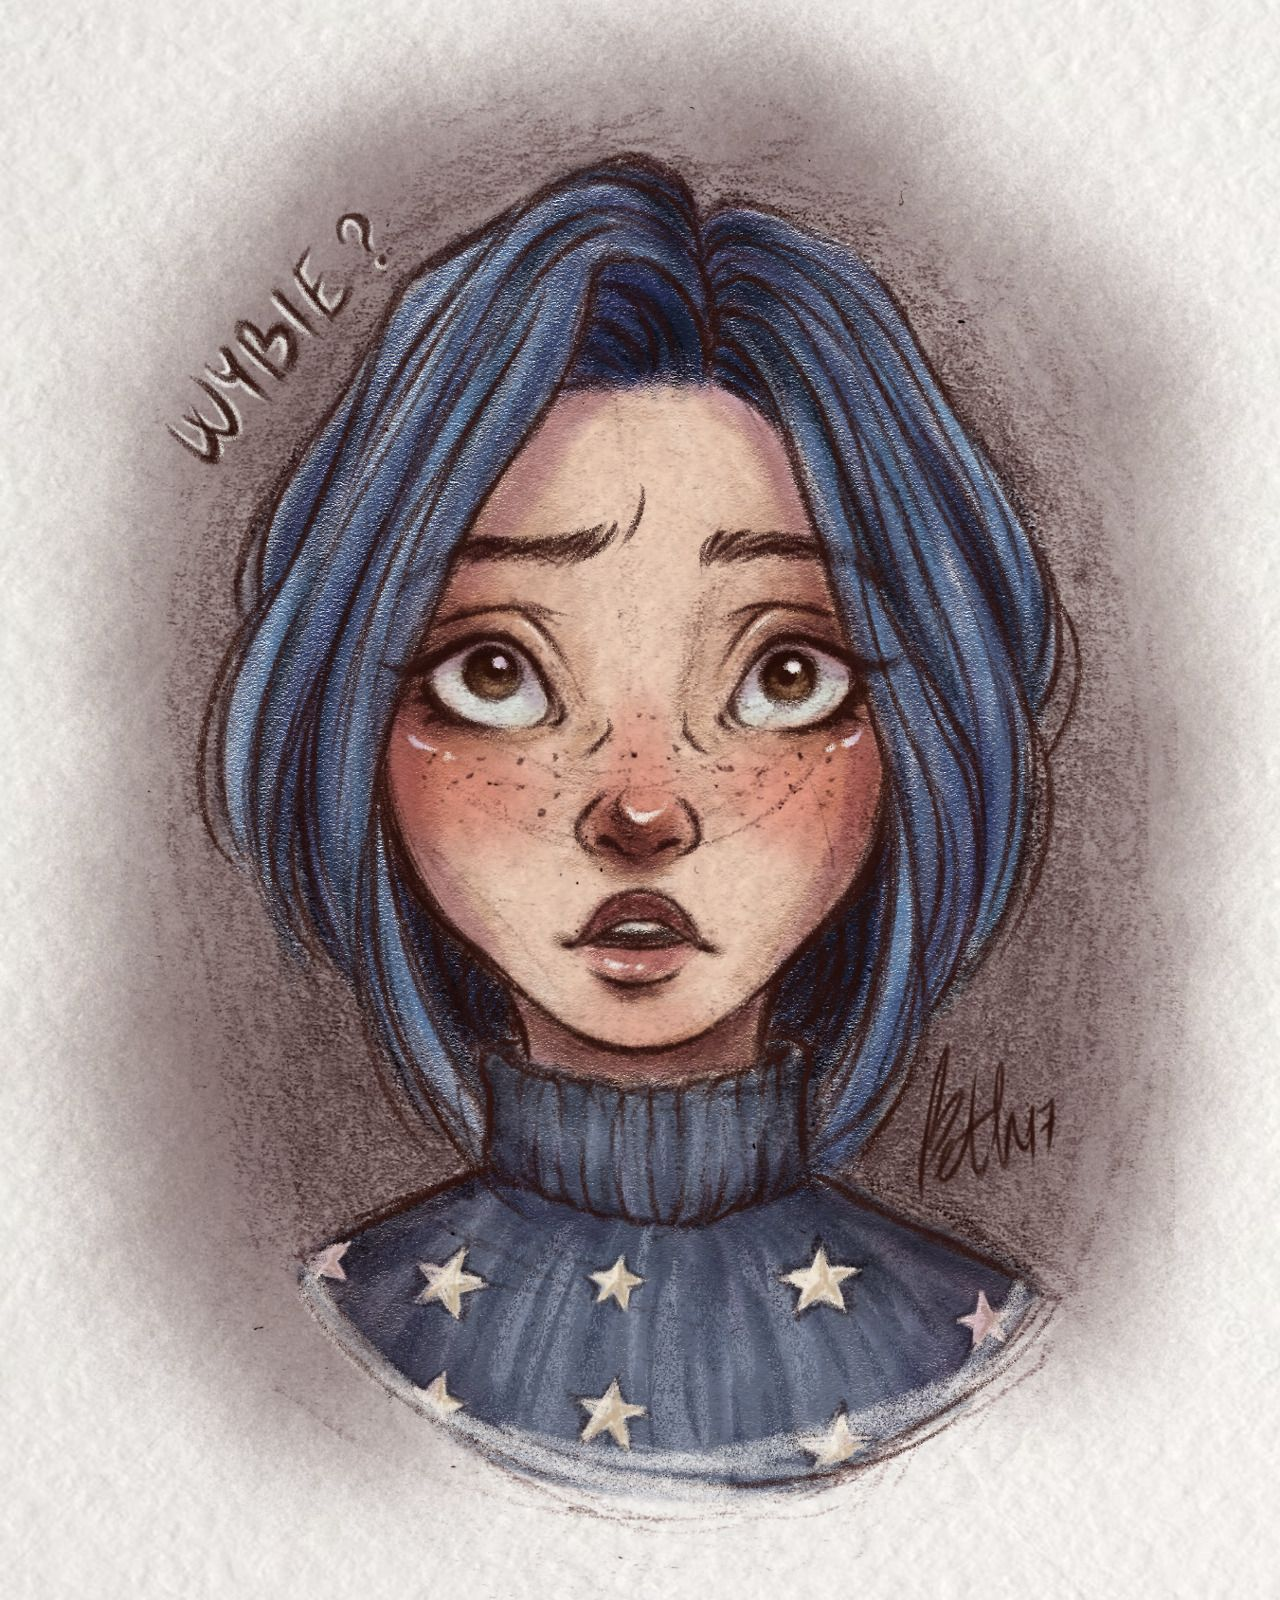 Coraline And Wybie Meet After A Really Long Time That S What I Live For Coraline Art Coraline Drawing Cartoon Art